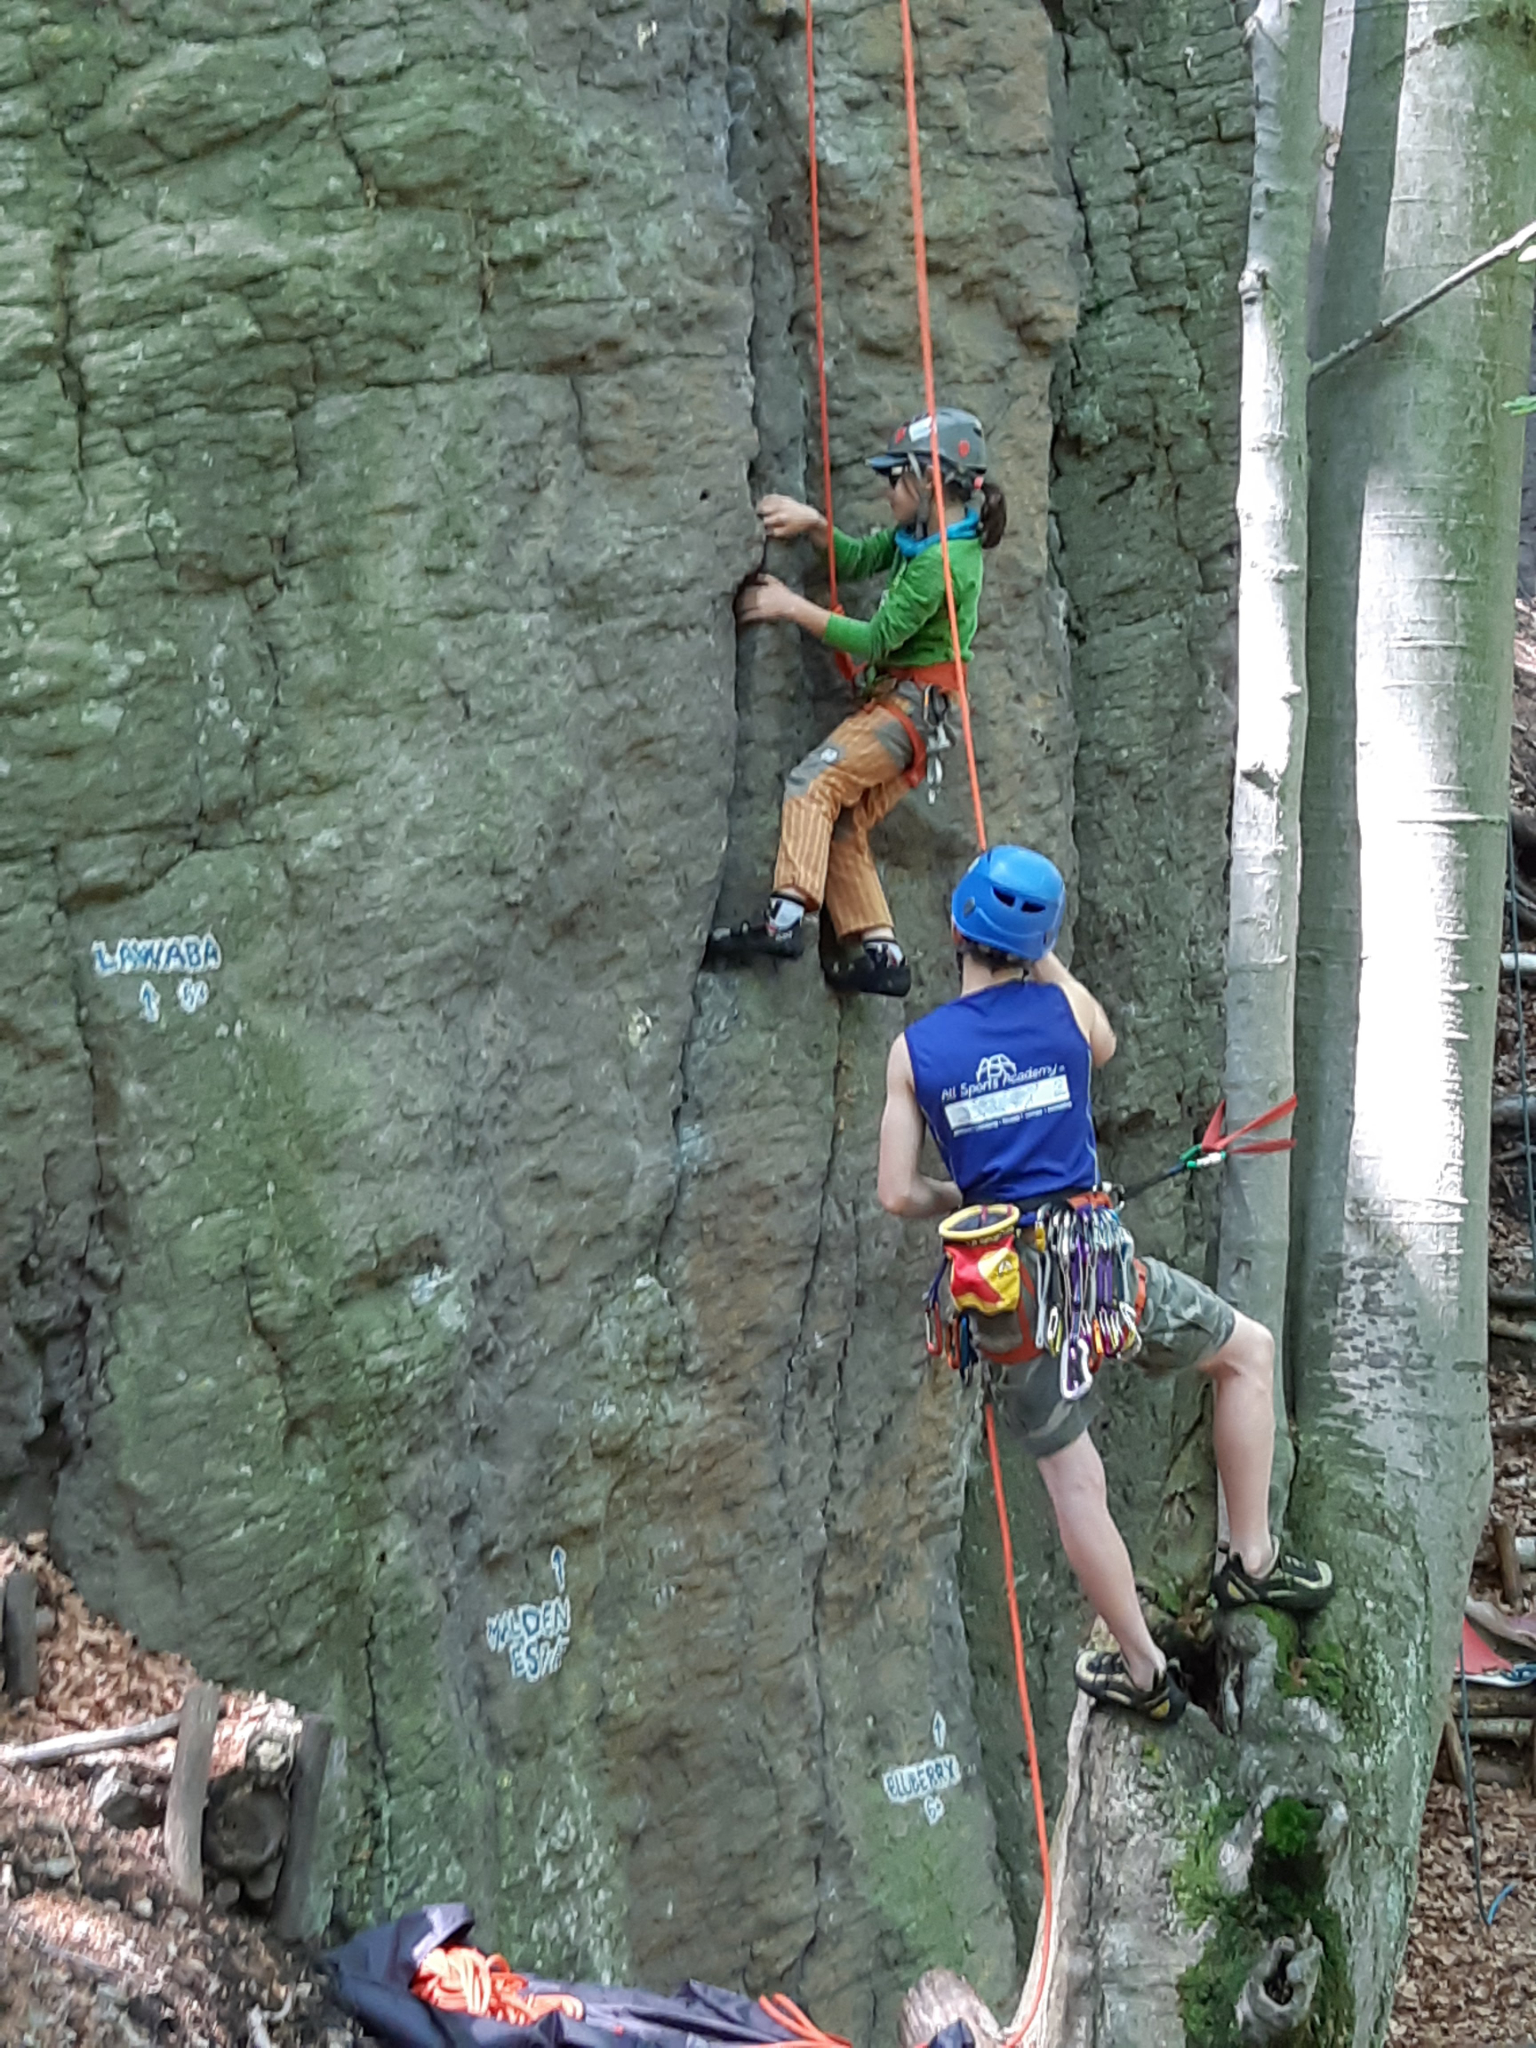 Sometimes there's no good place to stand for the belay.